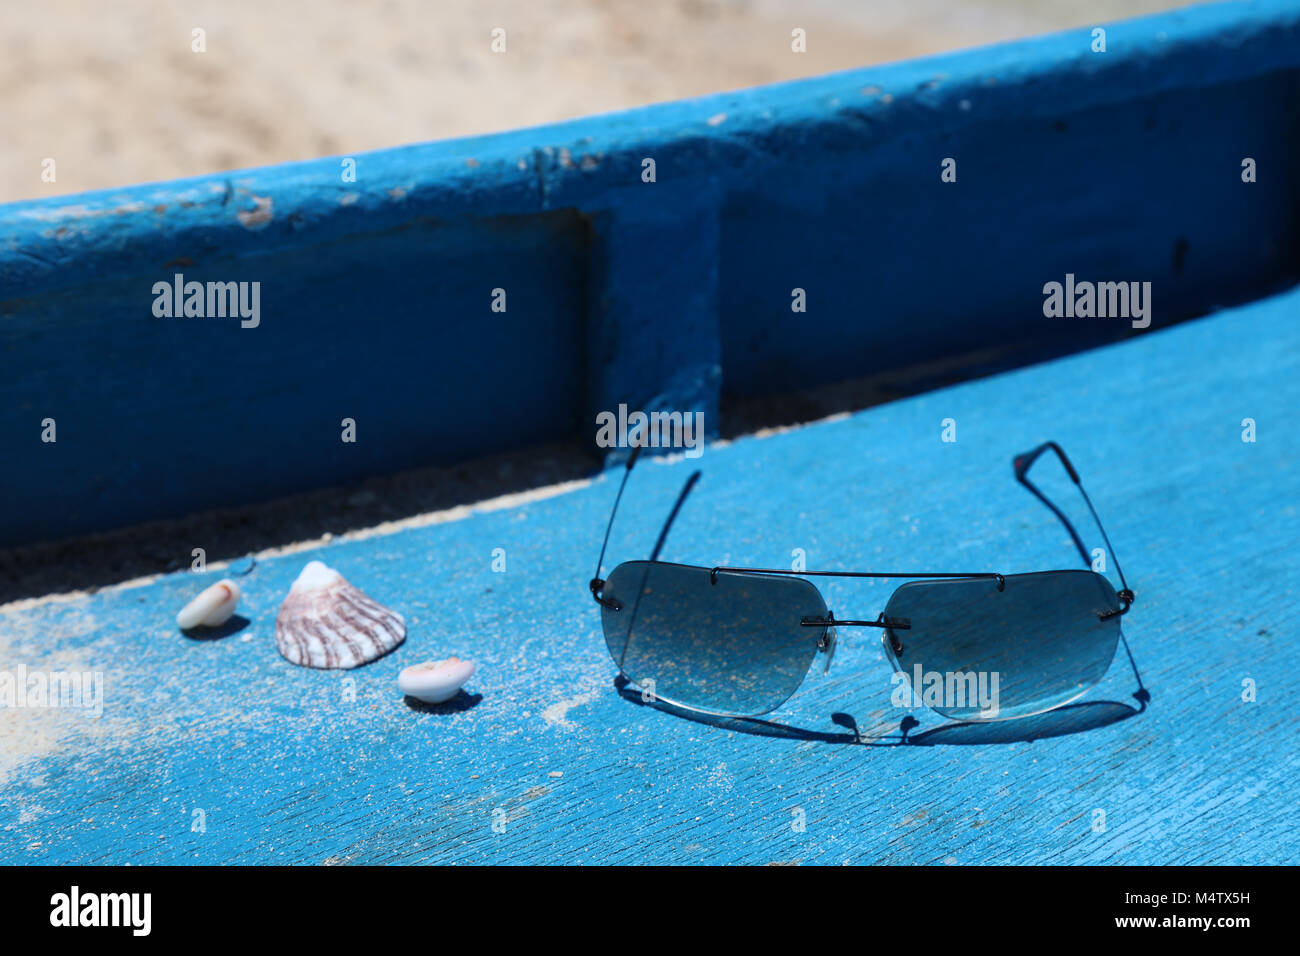 Shells and sun glasses on a boat deck, Boracay Island, Philippines. Concept of tropical vacation. - Stock Image